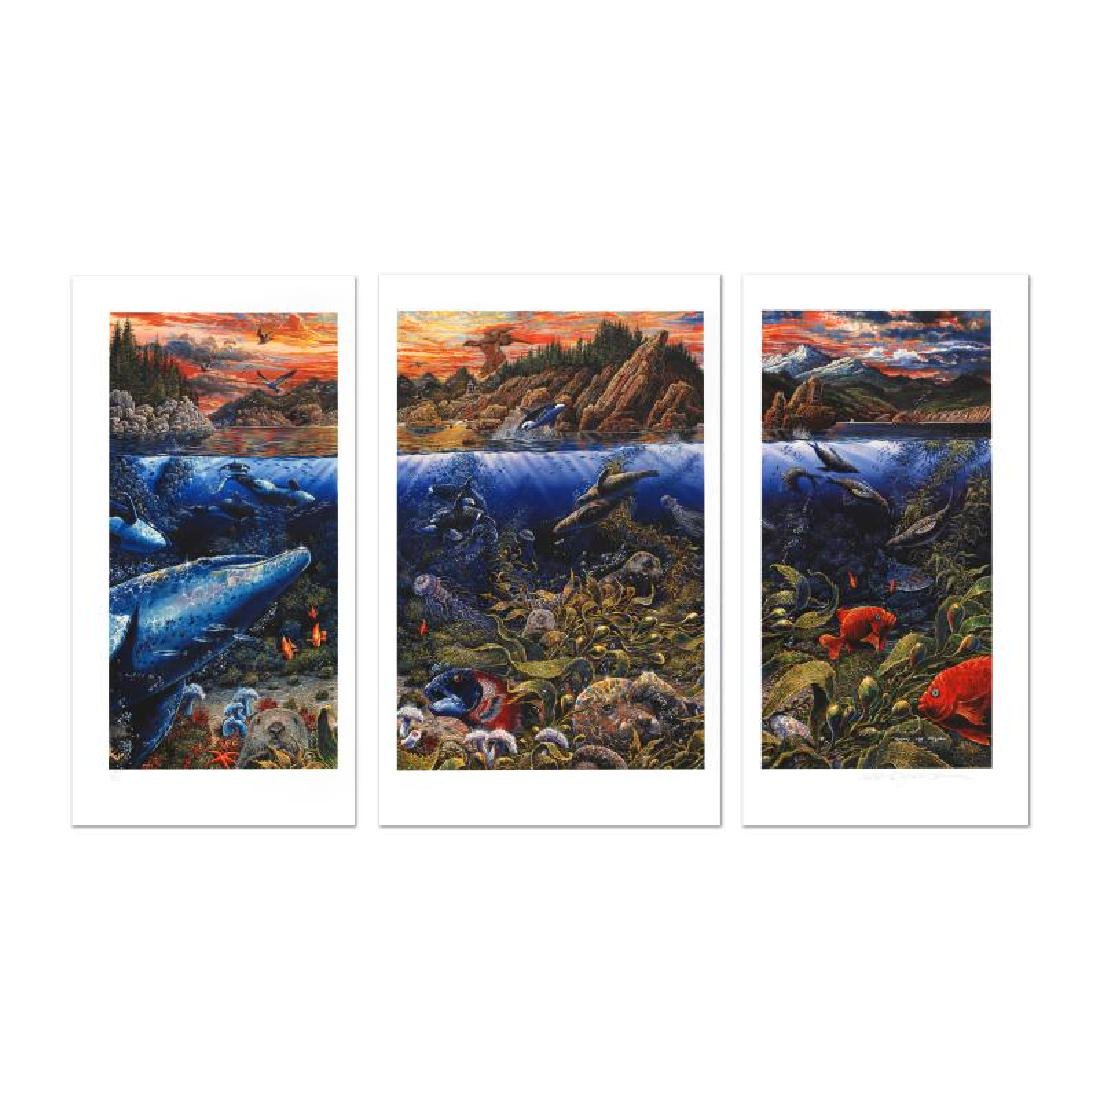 Underwater World Limited Edition Mixed Media Triptych